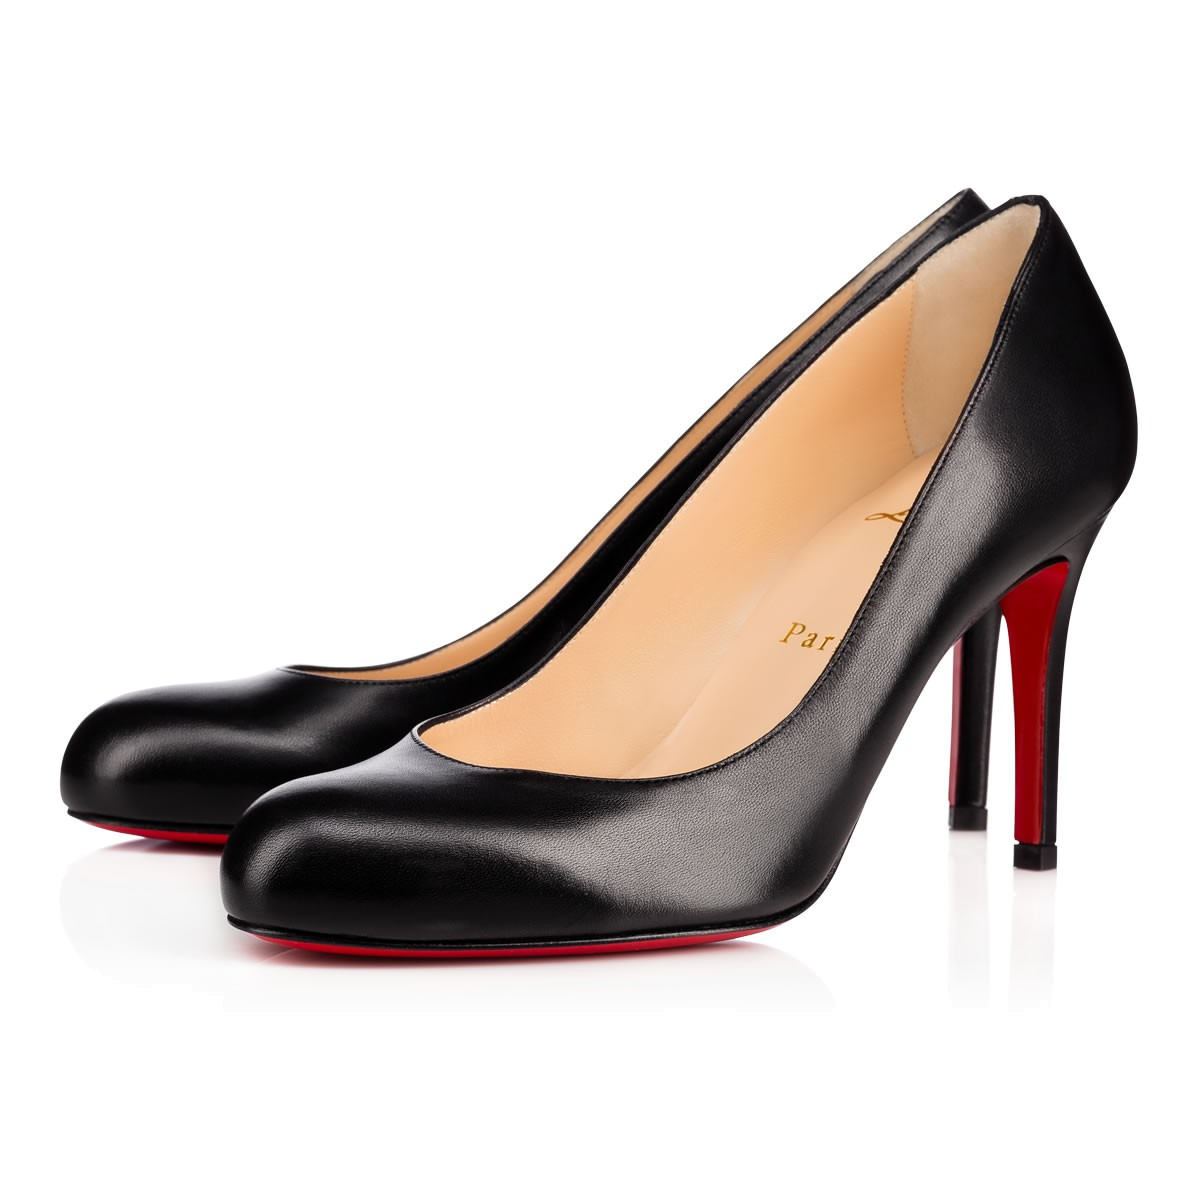 b847cdb759 Shoes - Simple Pump - Christian Louboutin ...